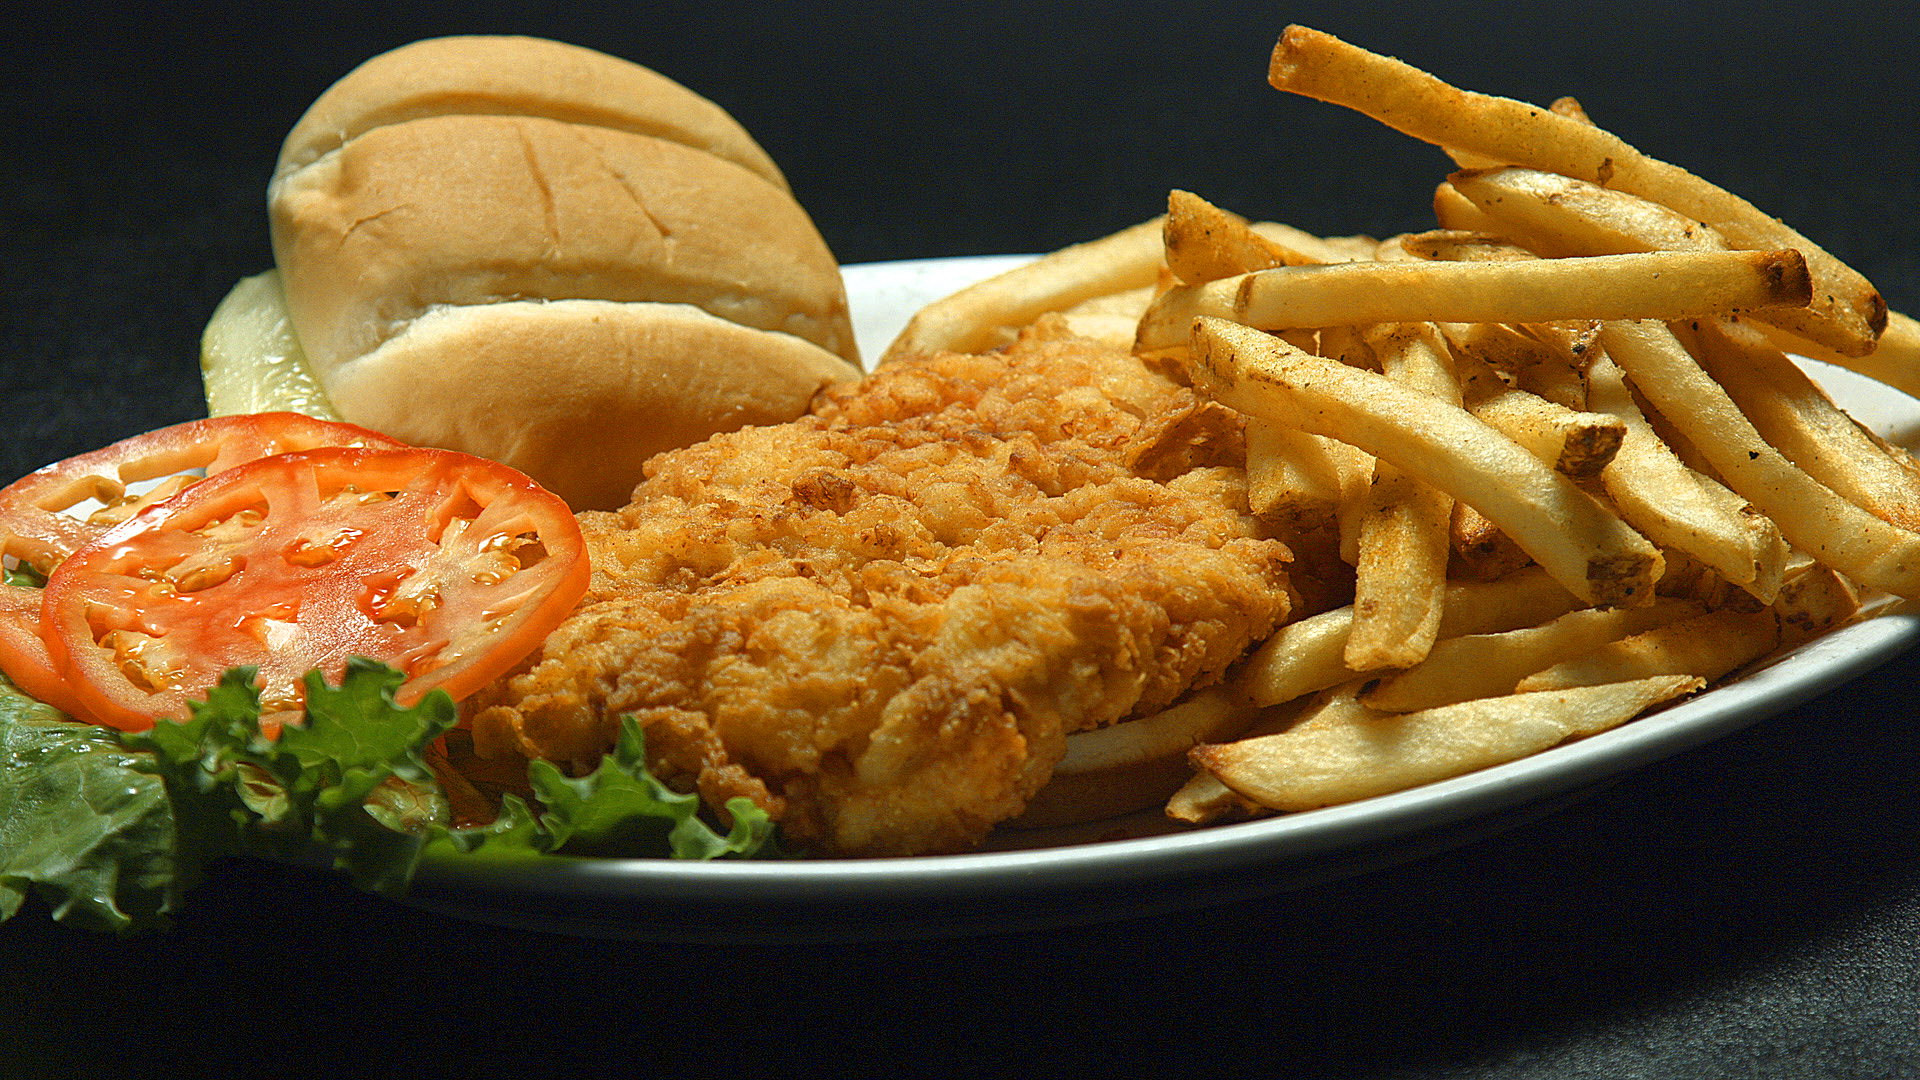 Fried chicken with fries and bread on the side